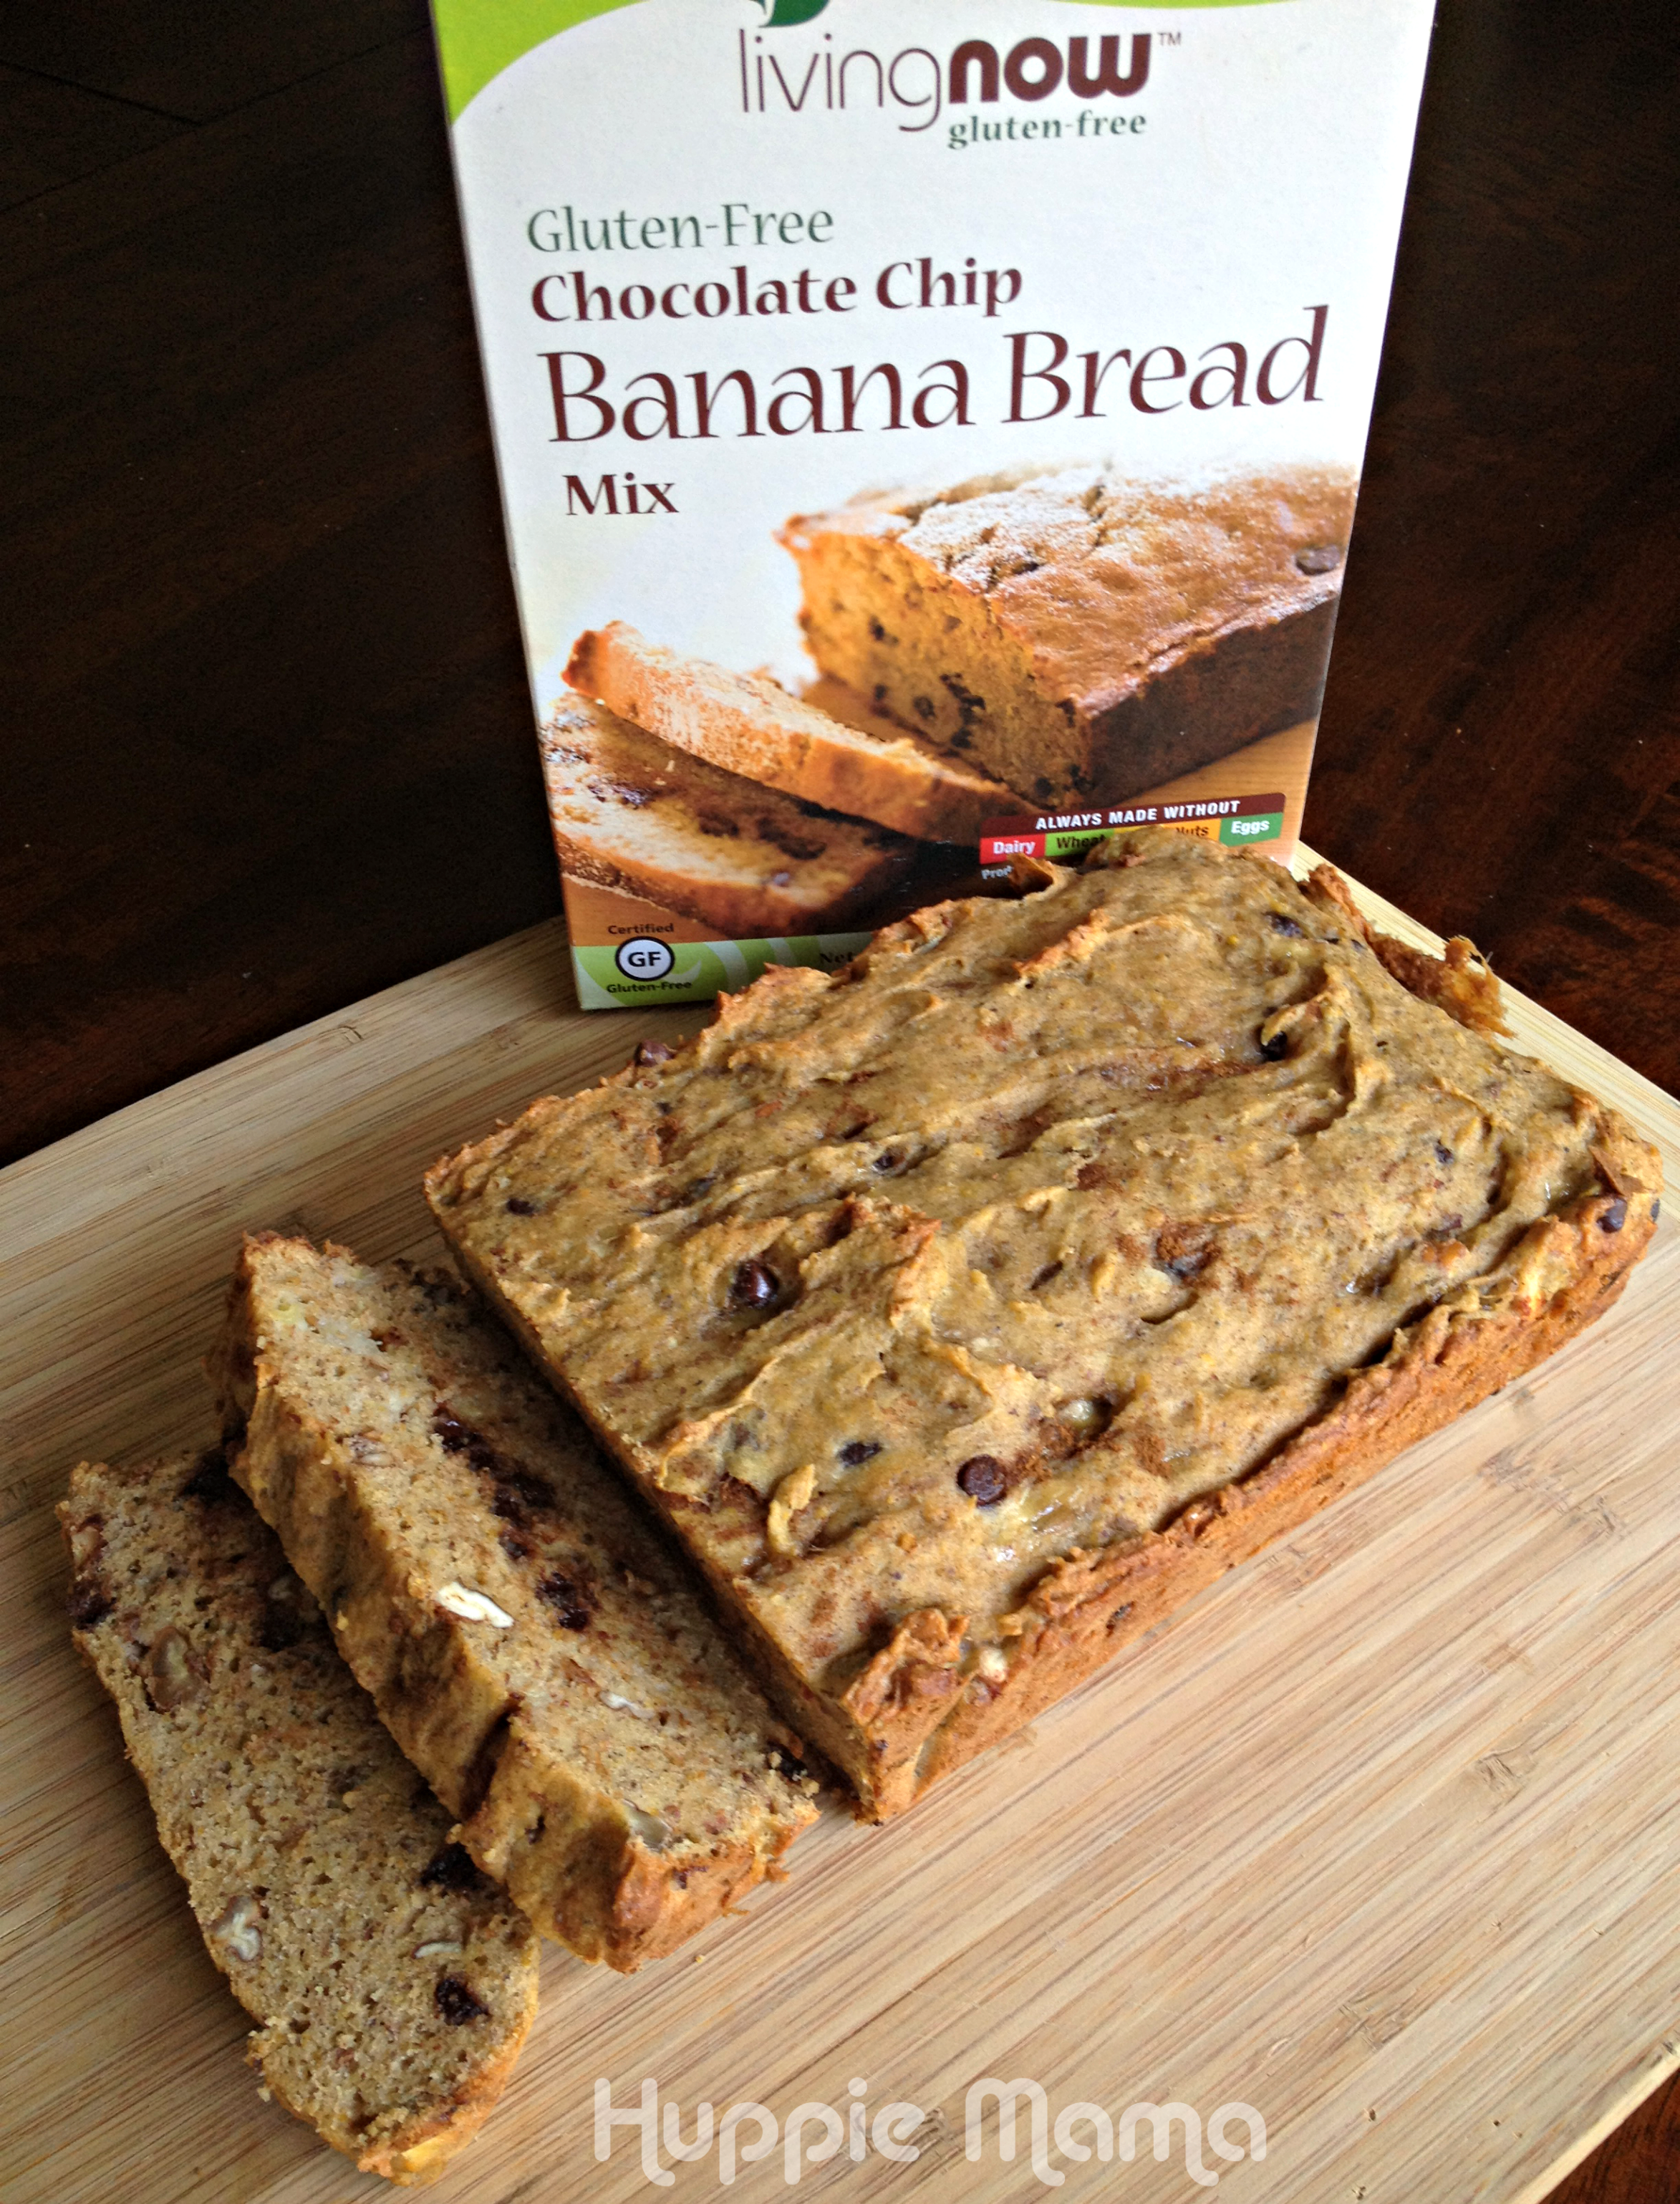 Gluten-Free Chocolate Chip Banana Nut Bread - Carrie Rose